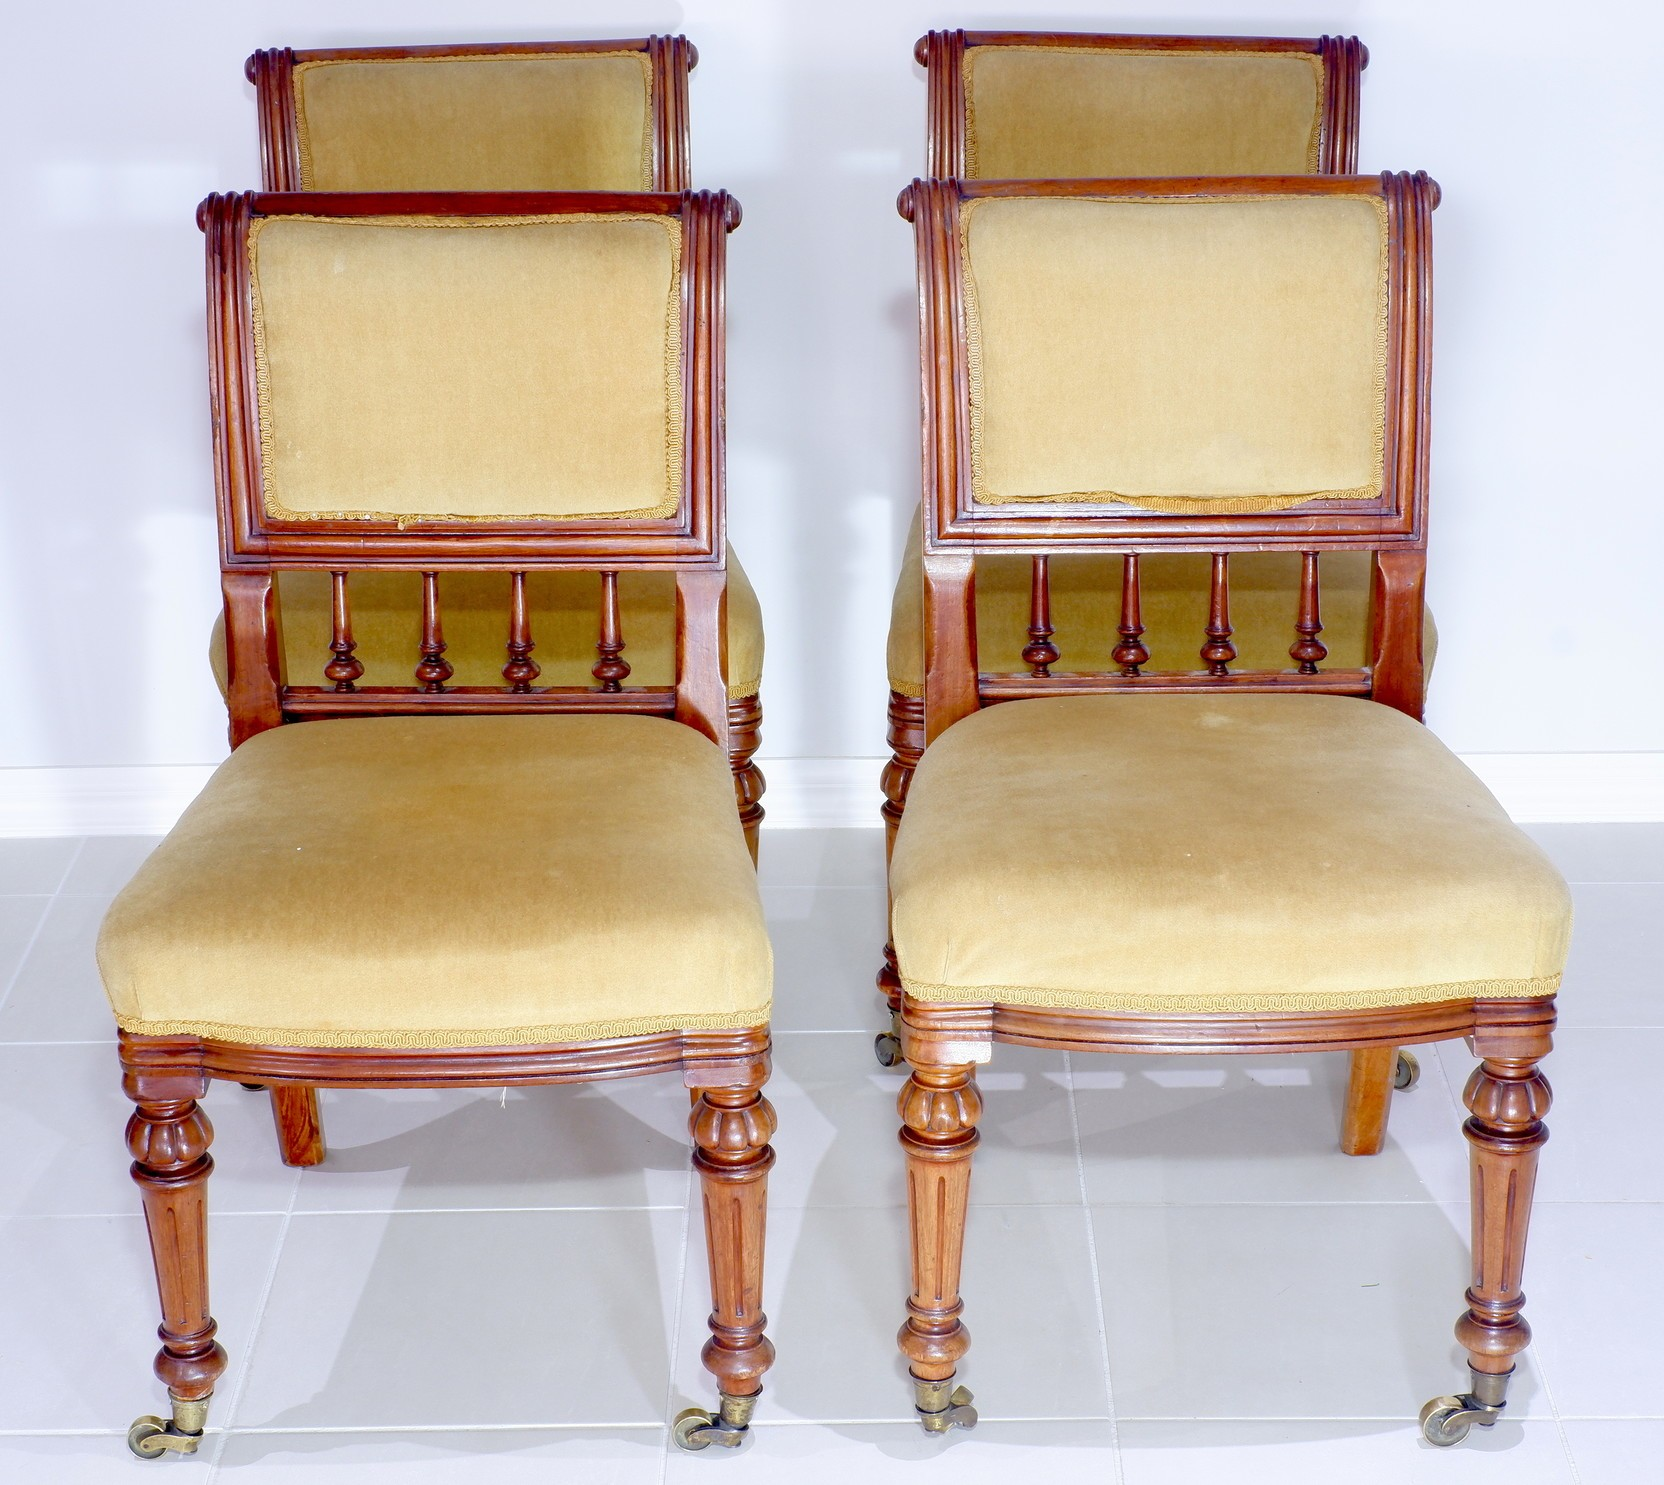 'Four Late Victorian Walnut and Olive Green Velvet Upholstered Drawing Room Chairs'